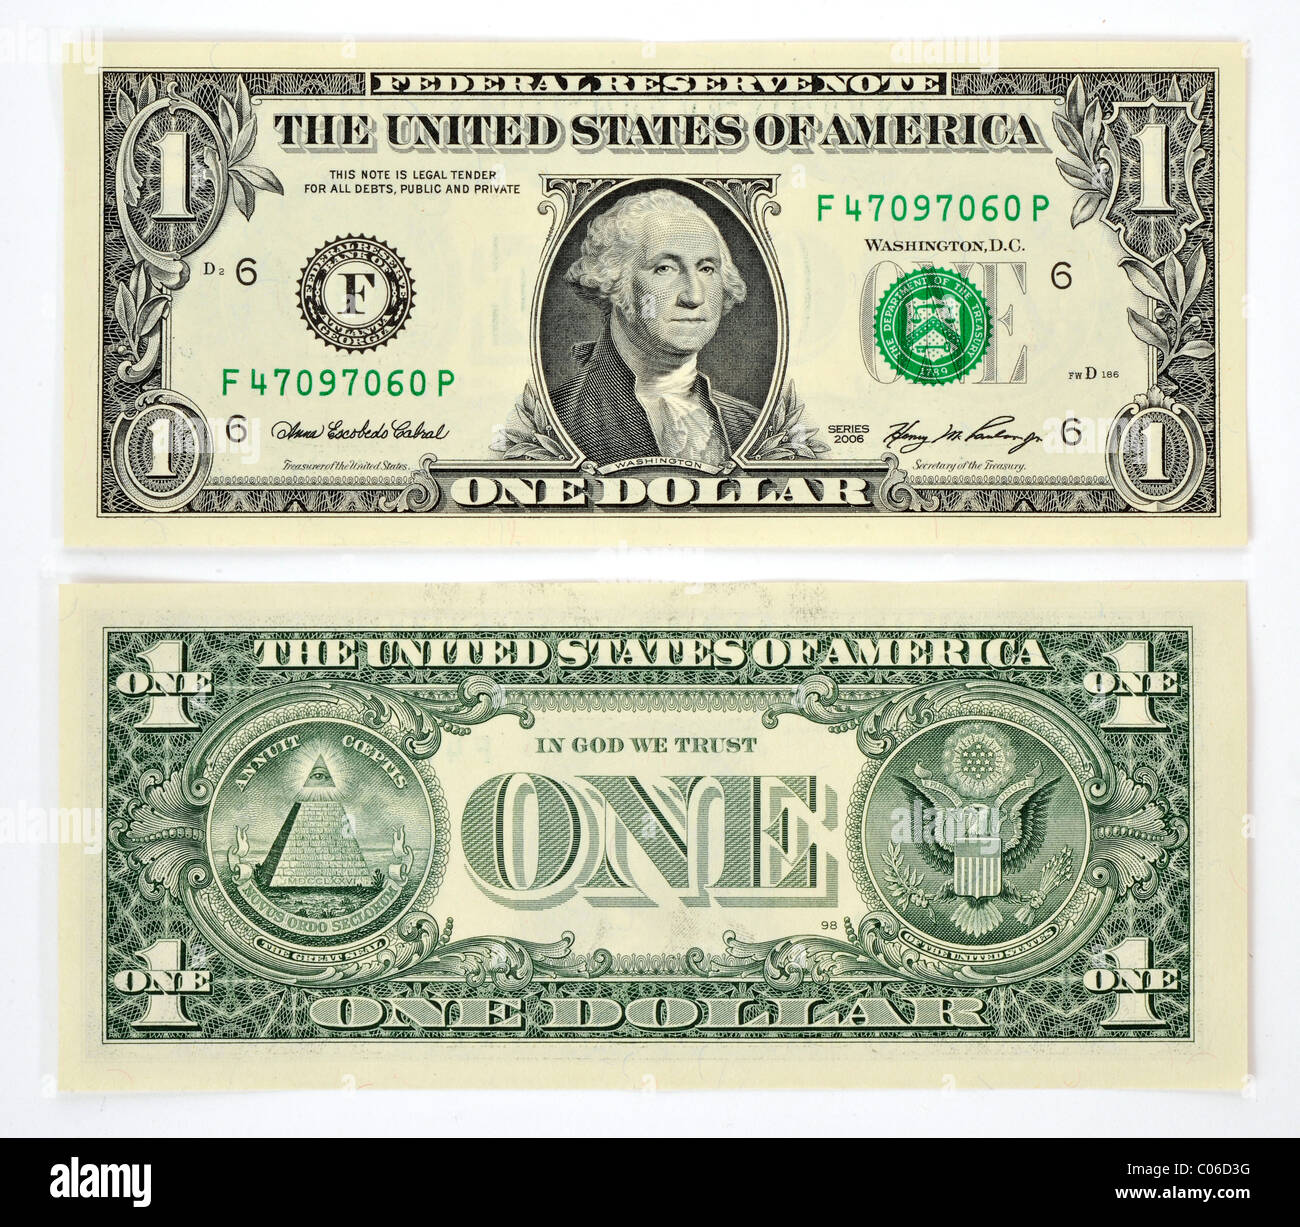 1 u s dollar banknote front and back stock photo royalty free image 34562740 alamy. Black Bedroom Furniture Sets. Home Design Ideas